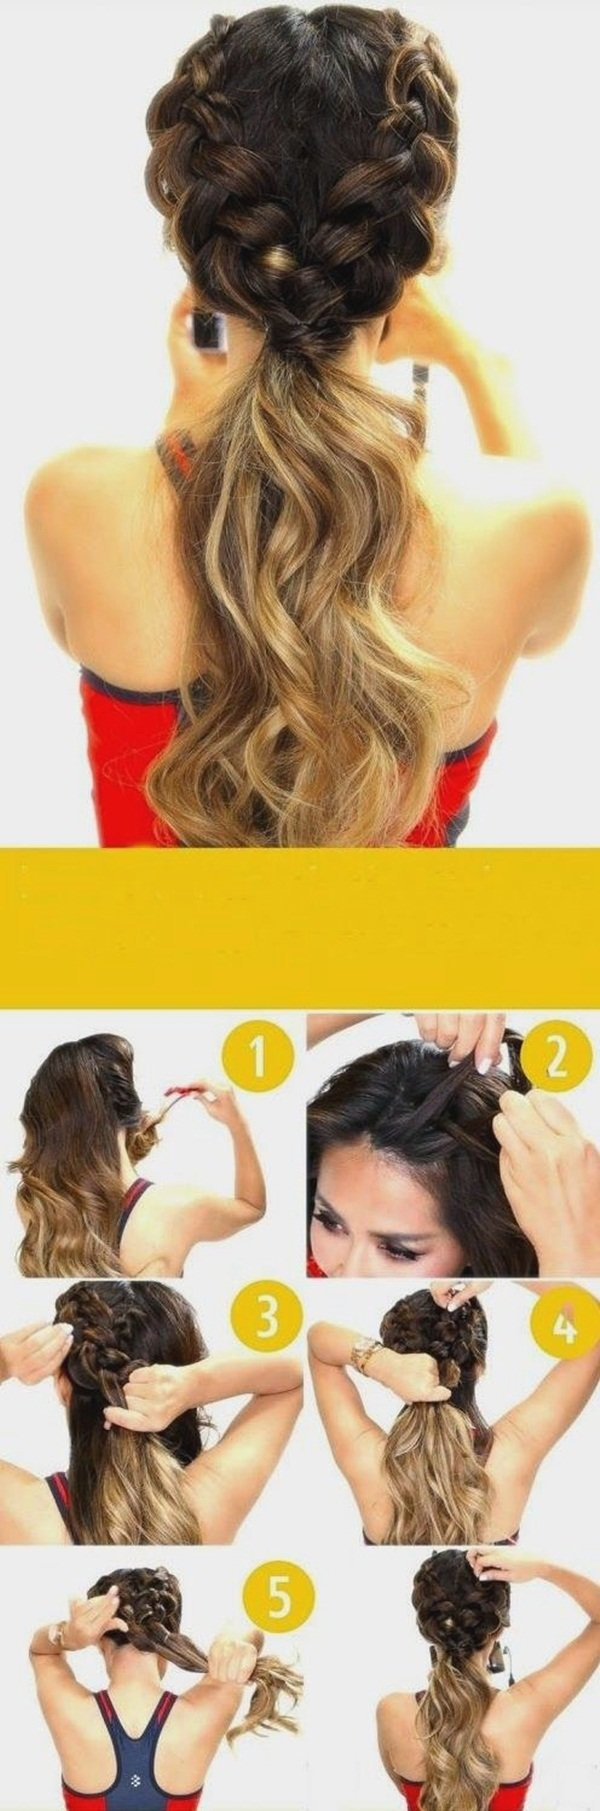 Free 40 Easy Hairstyles For Schools To Try In 2016 Wallpaper